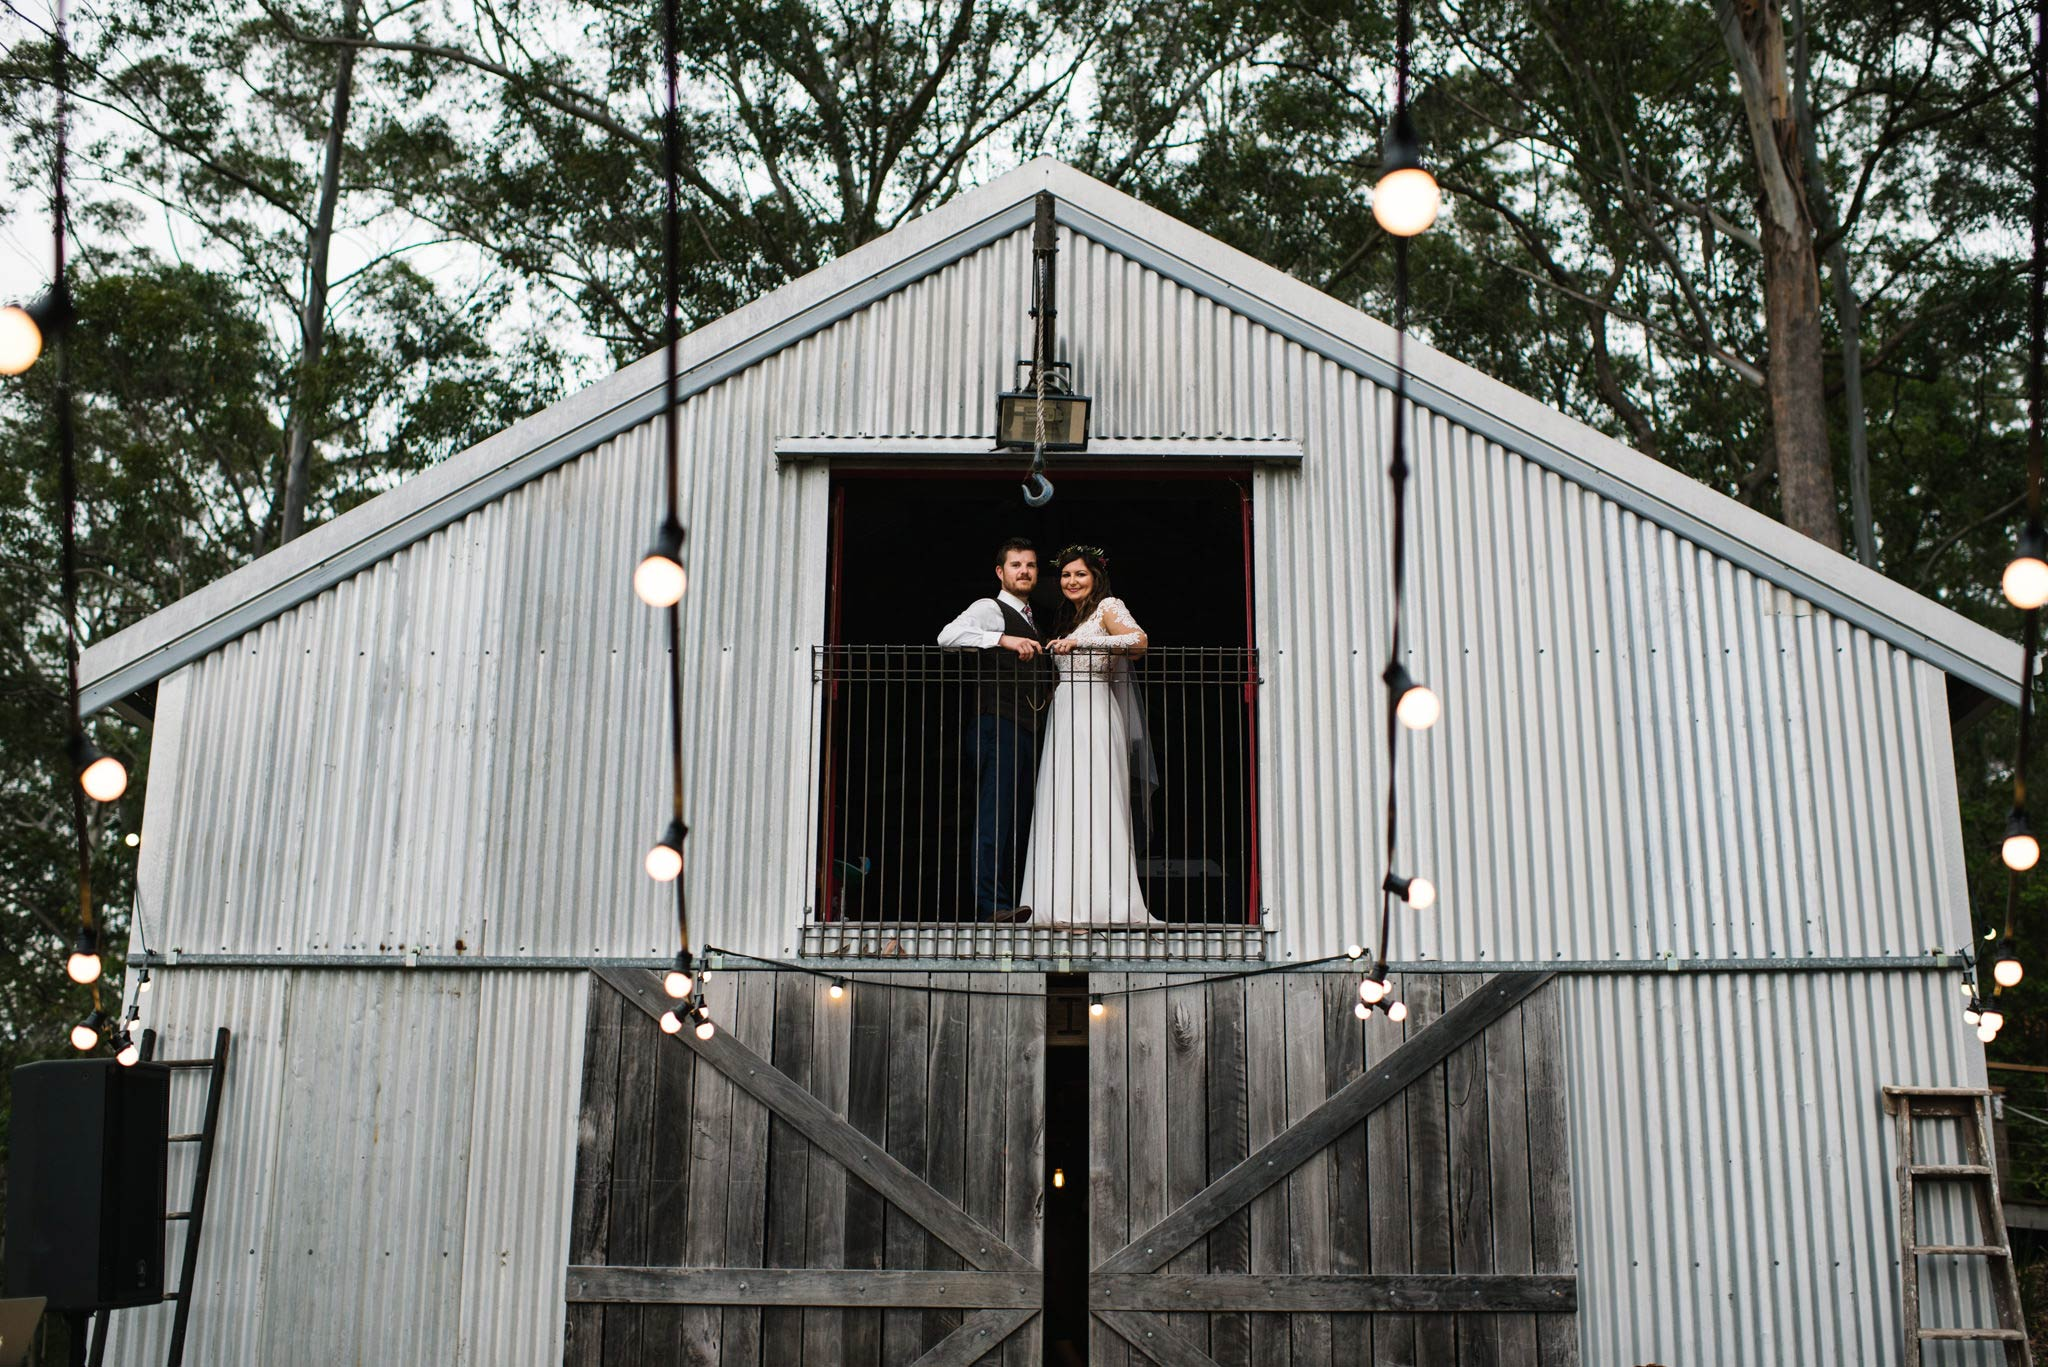 Bride and groom posing in the upper window of a barn